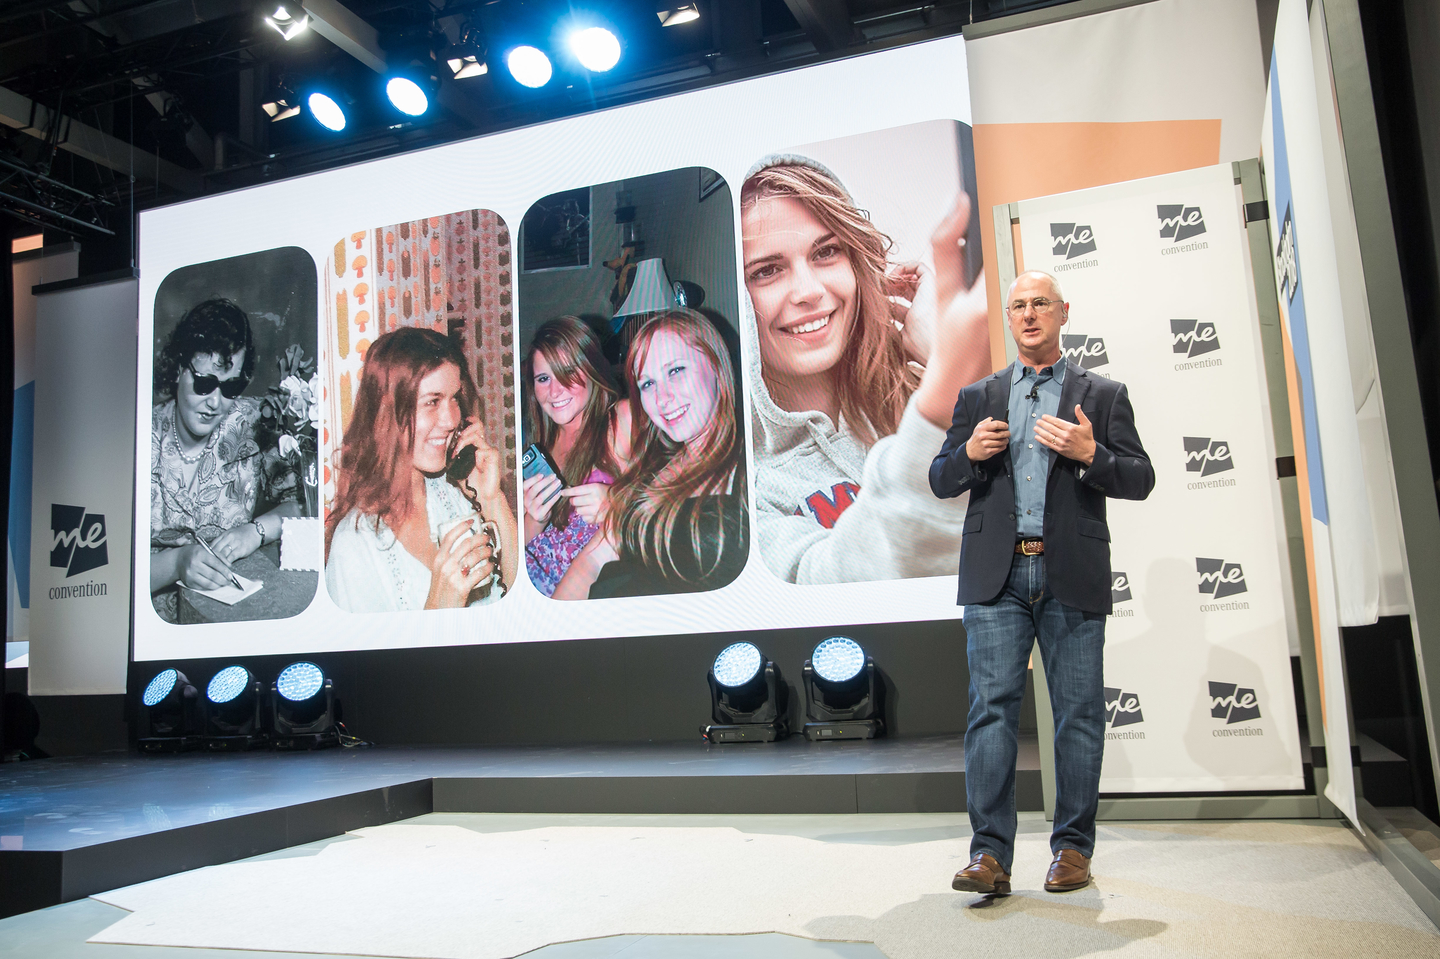 """Steve Horowitz, Vice President of Technology for Snap Inc., during his session: """"The Creative Camera: How Reimagining the Camera Empowers Self-expression and New Ways to Experience the World."""" Photo by Markus Nass/Daimler AG"""